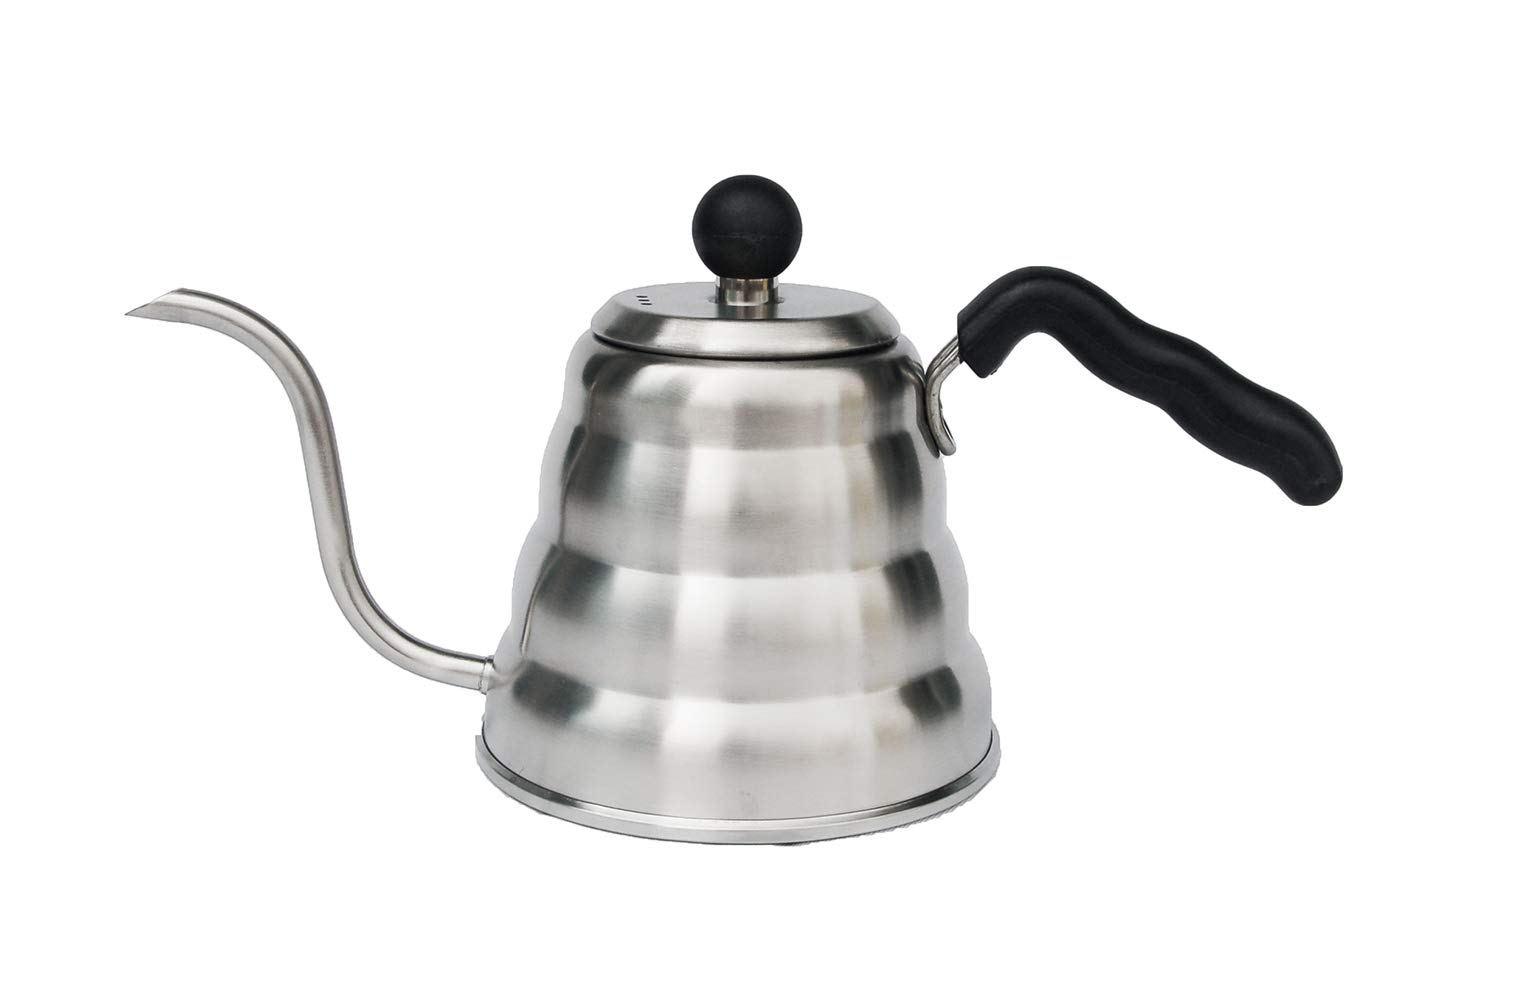 Mixpresso Gooseneck Pour Over Coffee Kettle | Barista Pour Control Design| Ideal for Coffee and Tea | High-Grade Stainless Steel I 1.2 Liter (40 OZ) I For Drip Coffee I Induction Cooker I Stove Top by Mixpresso